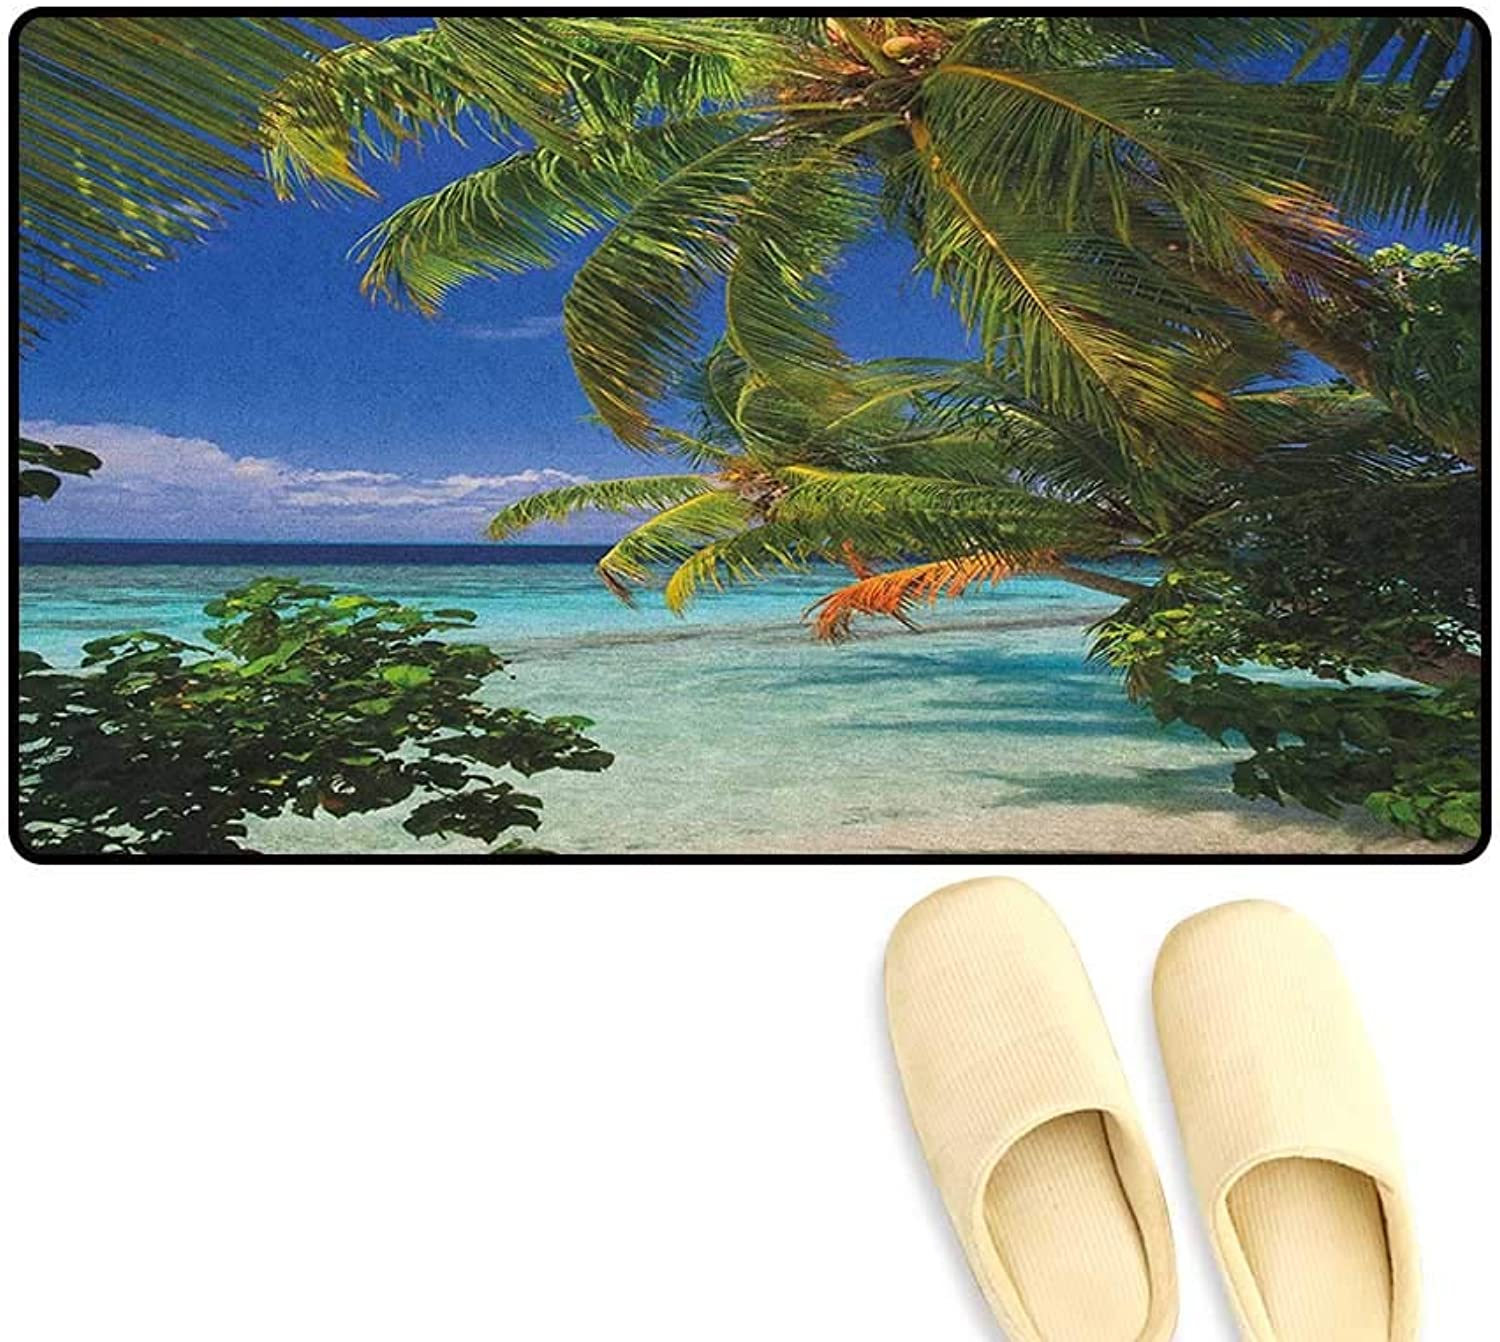 Zojihouse Plant Door Mats for Inside Bathroom Non Slip Backing Tropical Paradise at Maldives with Palms bluee Sky Beautiful Beaches Tranquility Size 24 x36  Sky bluee Green